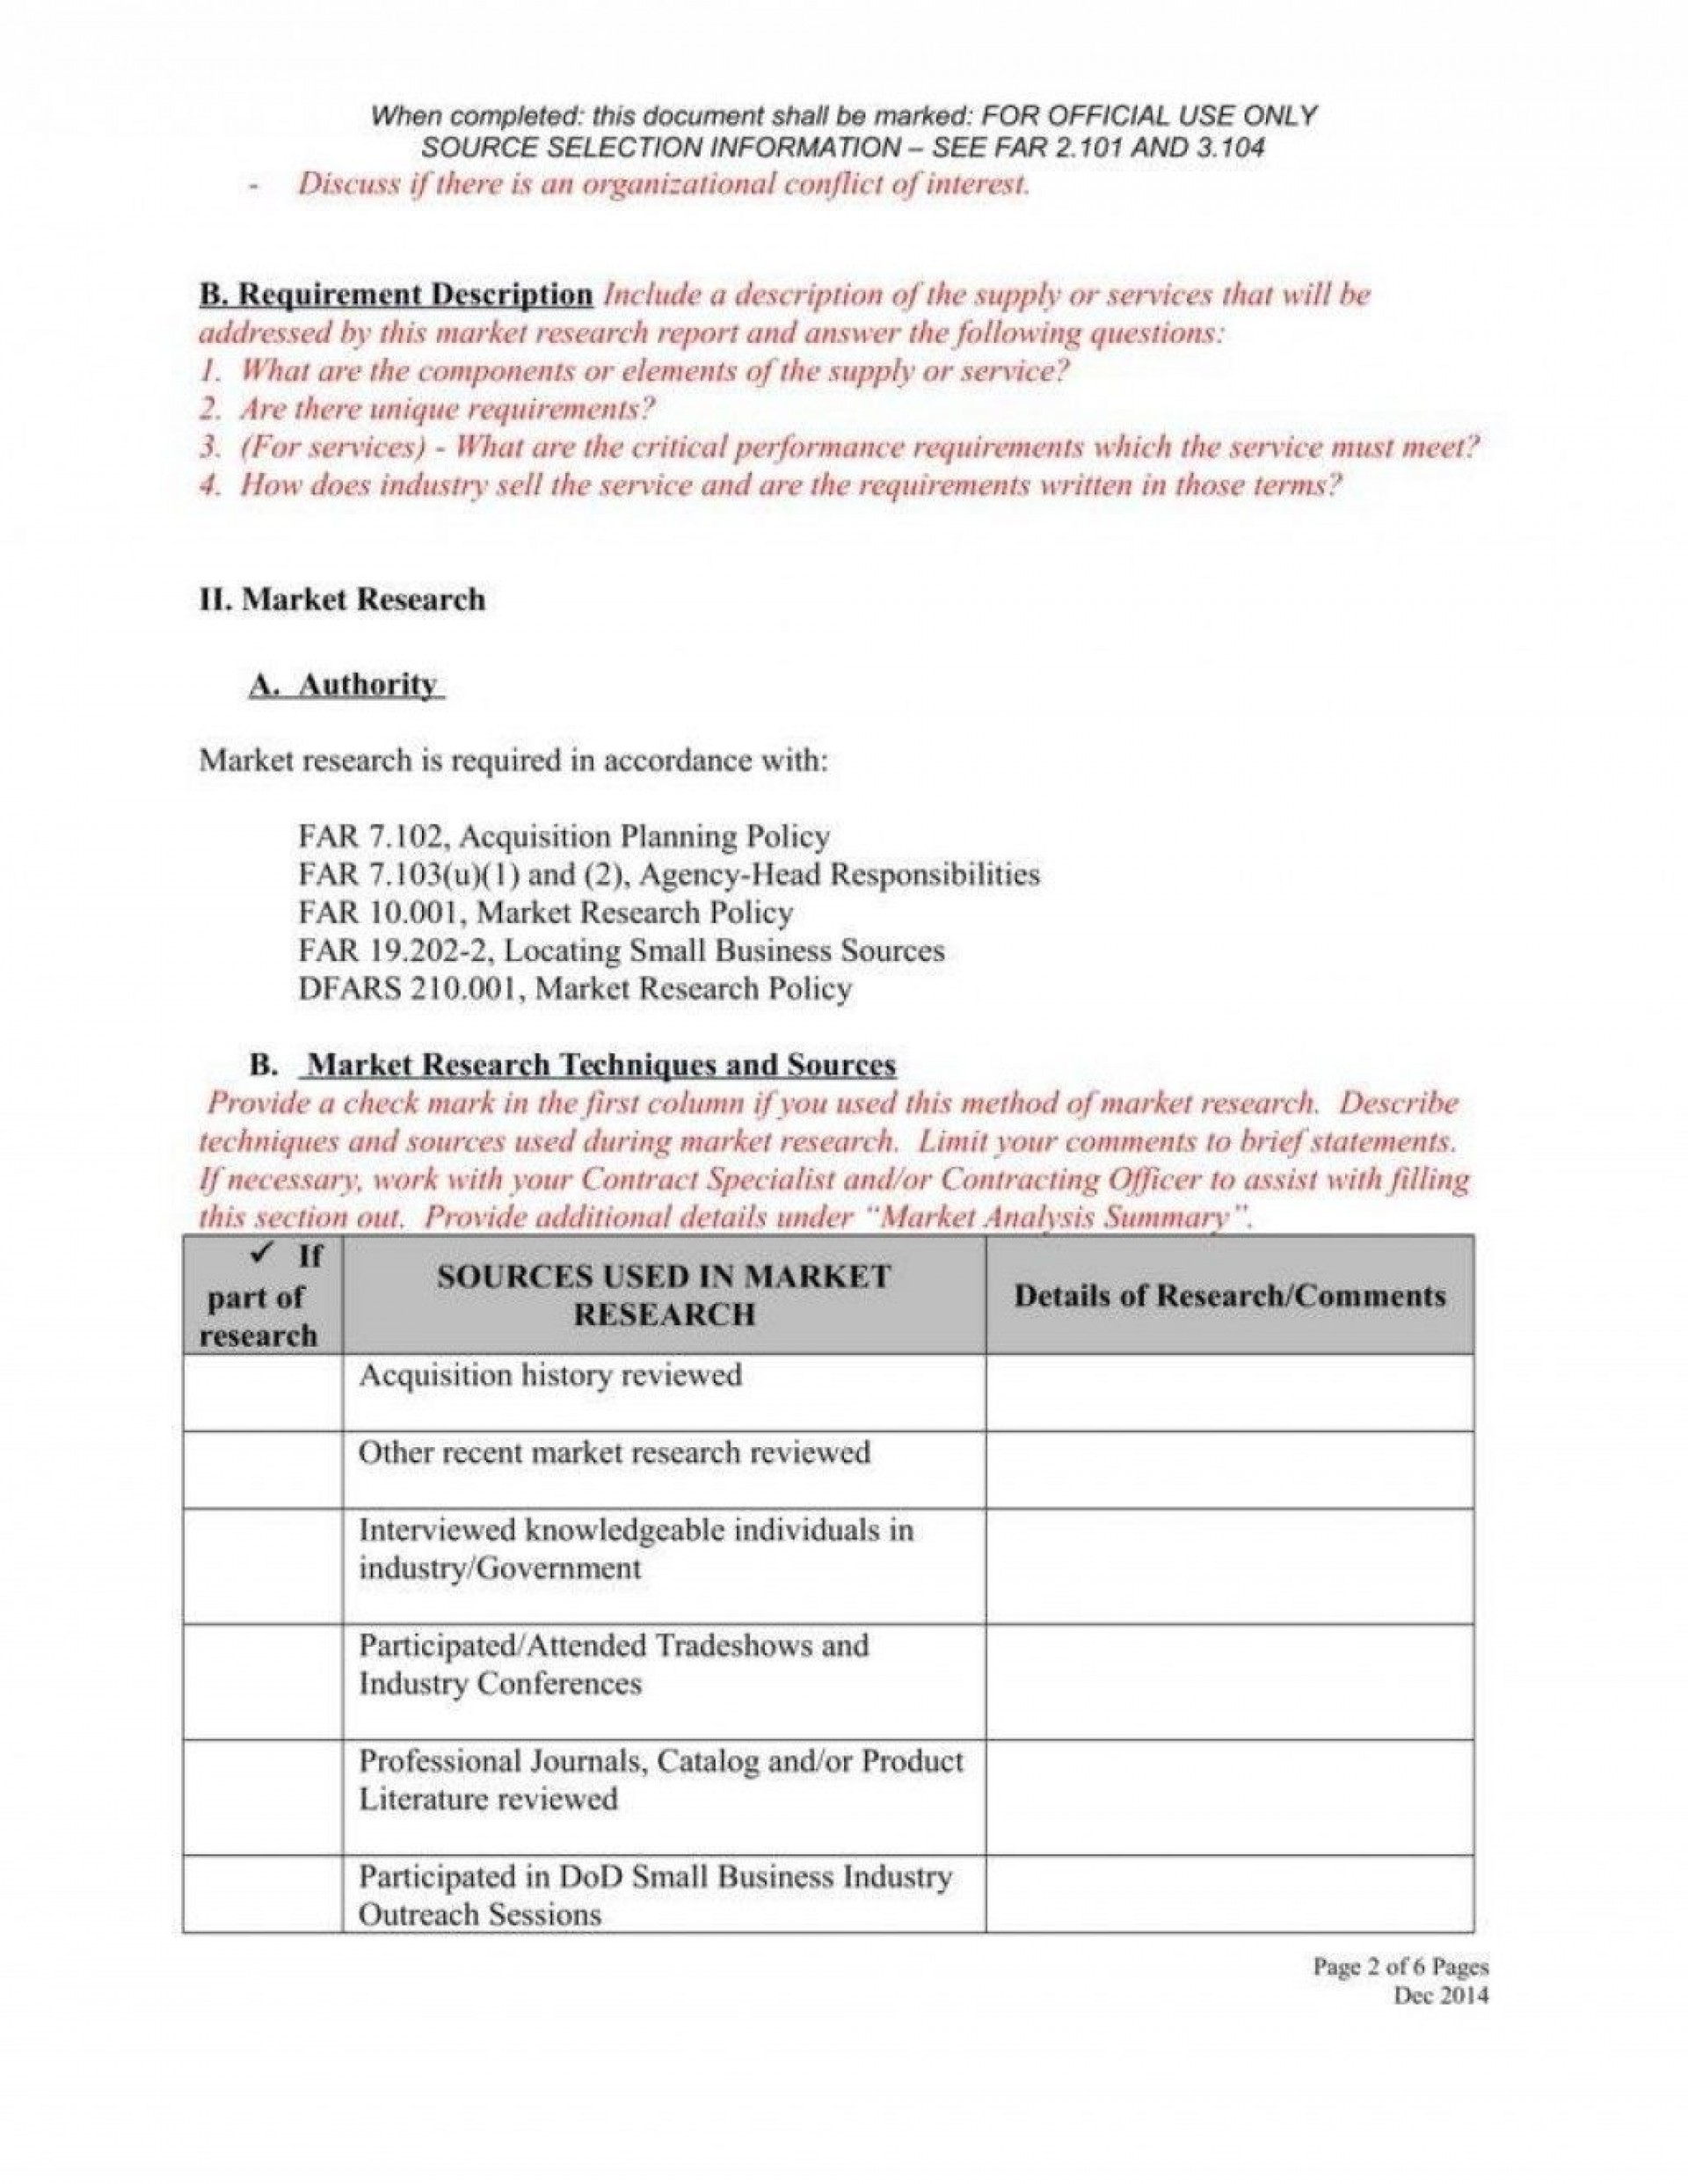 008 Shocking Market Research Report Template Image  Excel Sample Free1920